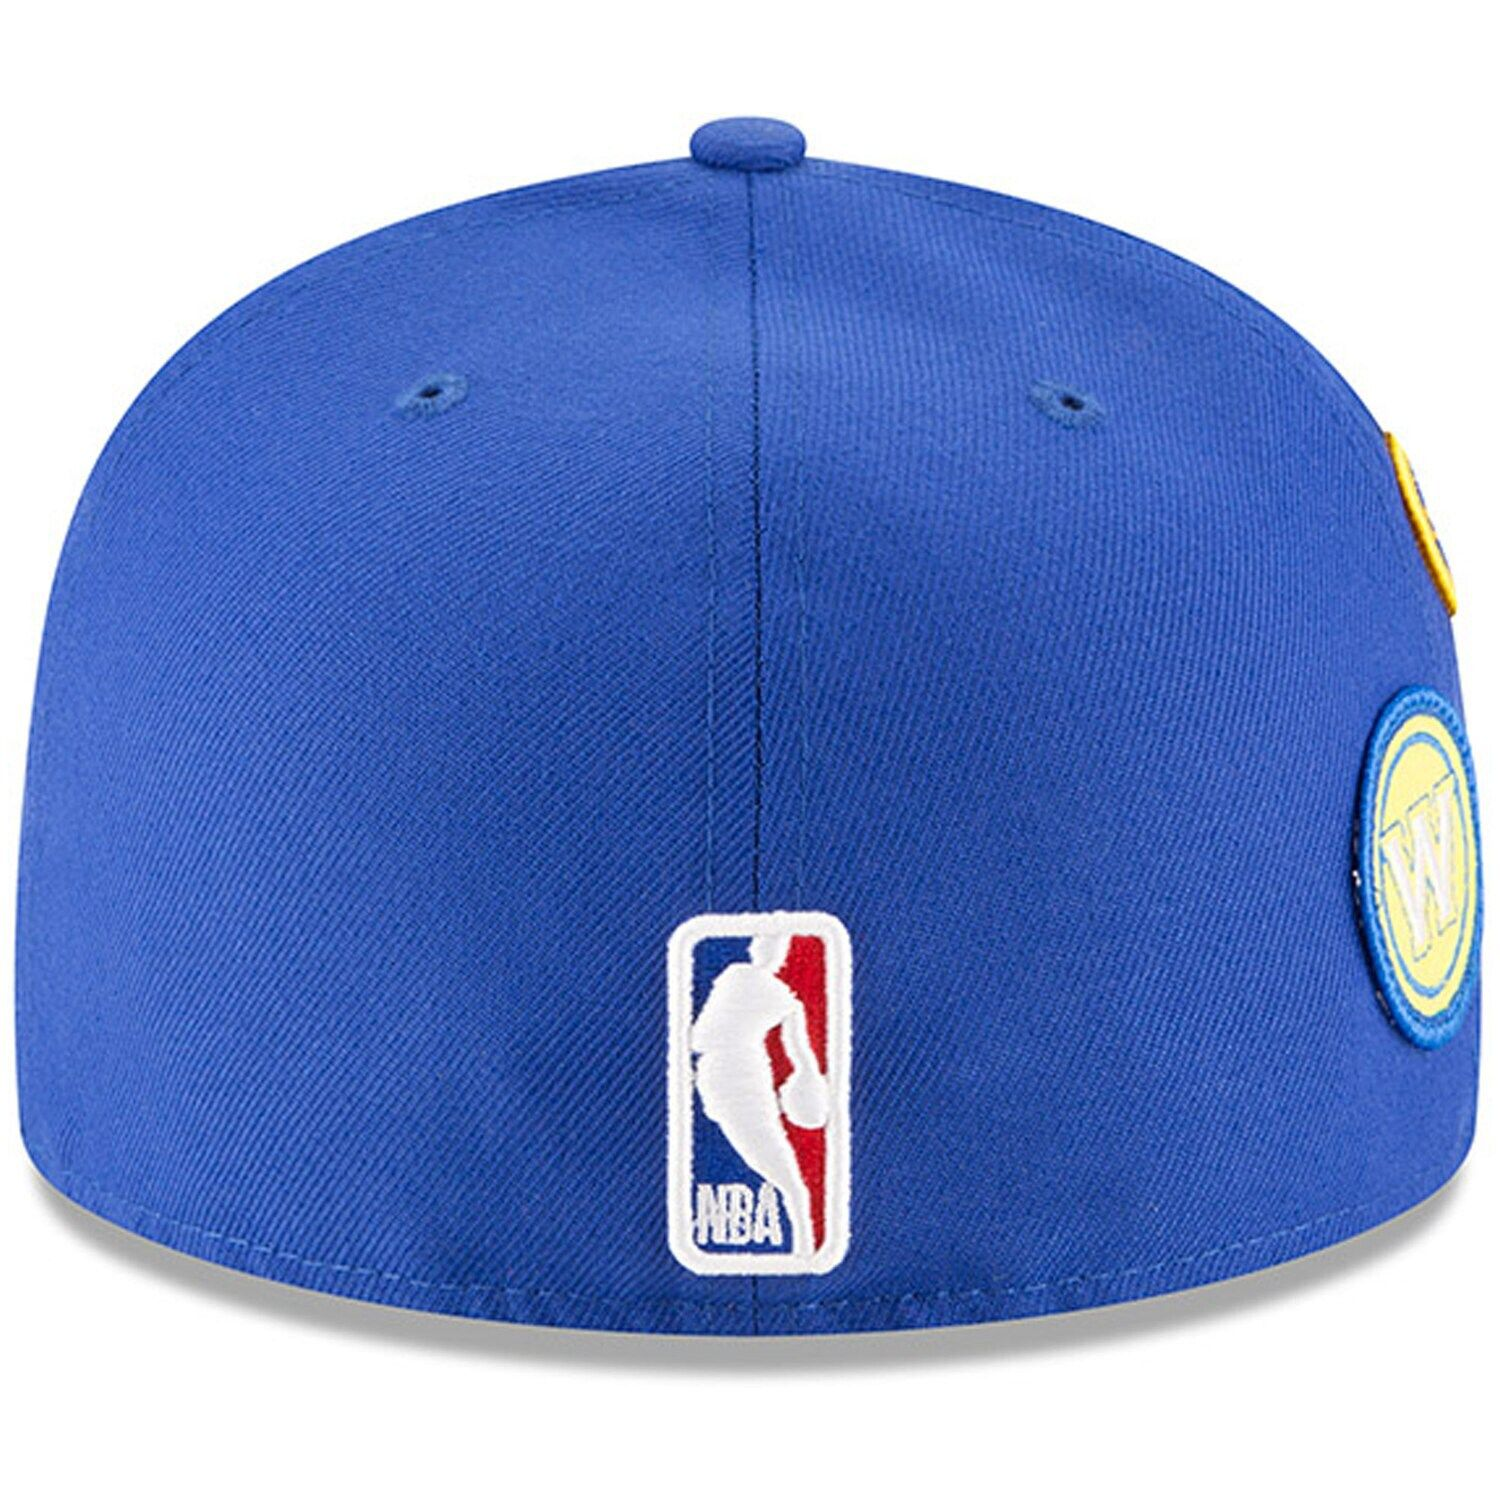 Men S New Era Royal Golden State Warriors 2018 Draft 59fifty Fitted Hat Affiliate Golden Spon State Warr Golden State Warriors 2018 Fitted Hats New Era